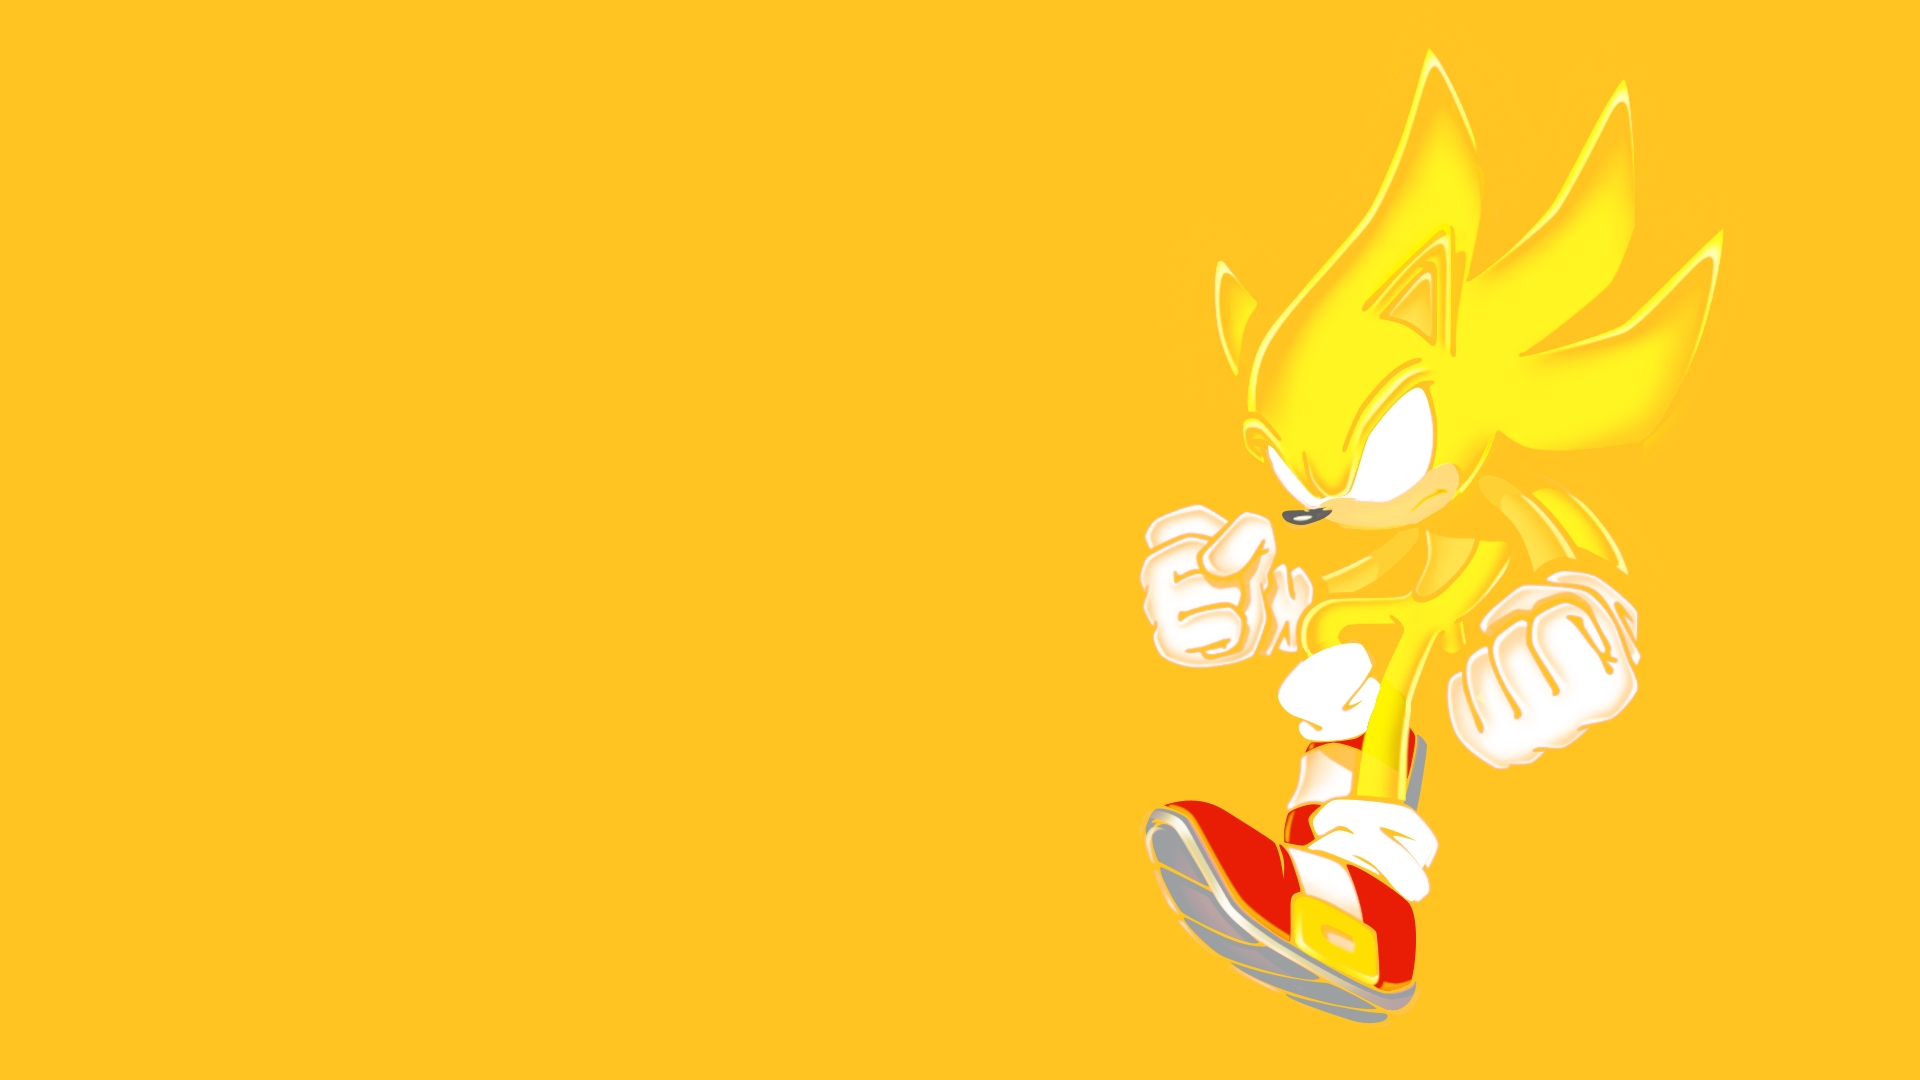 Sonic Sonic The Hedgehog Yellow Wallpaper 1920x1080 58362 Wallpaperup